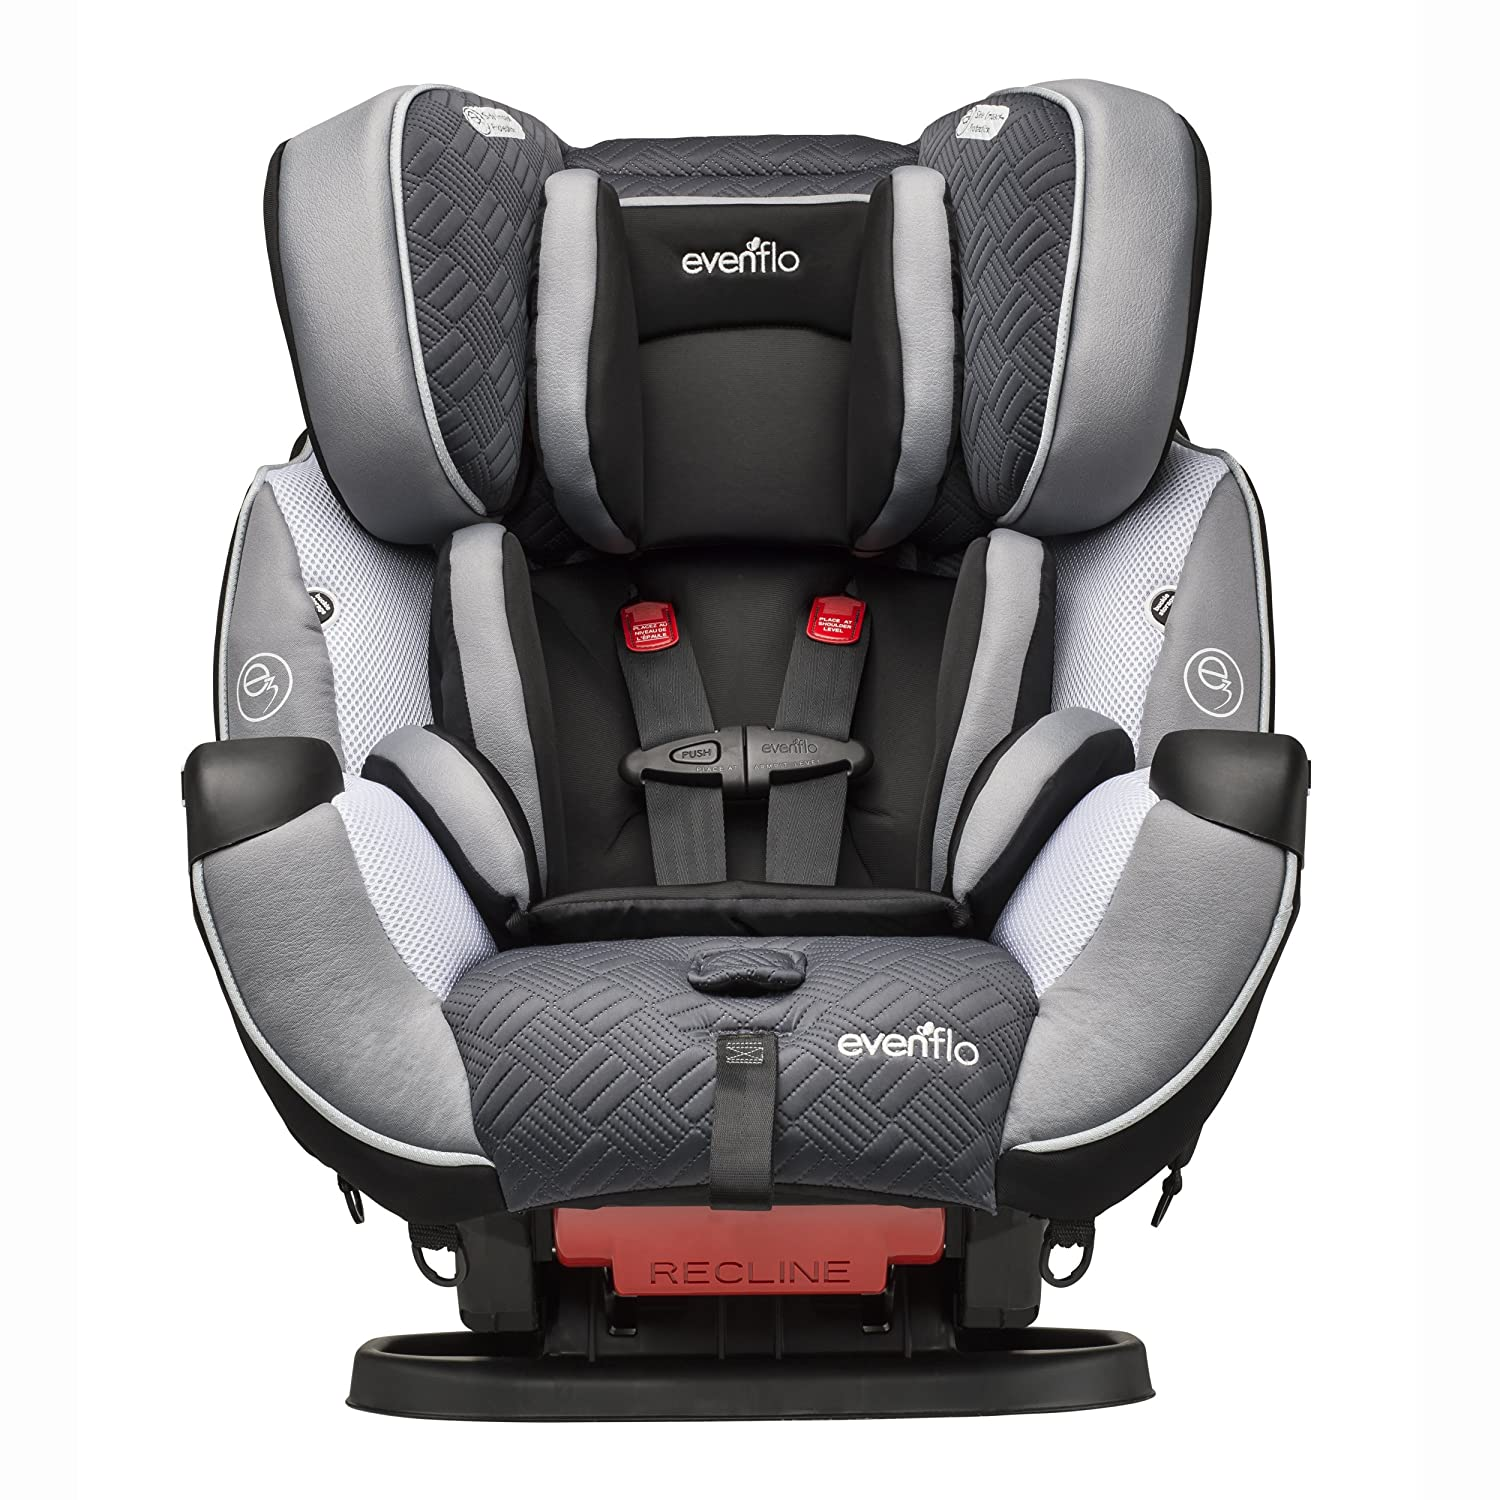 sc 1 st  Amazon.com & Amazon.com : Evenflo Symphony DLX All-in-One Car Seat Concord : Baby islam-shia.org